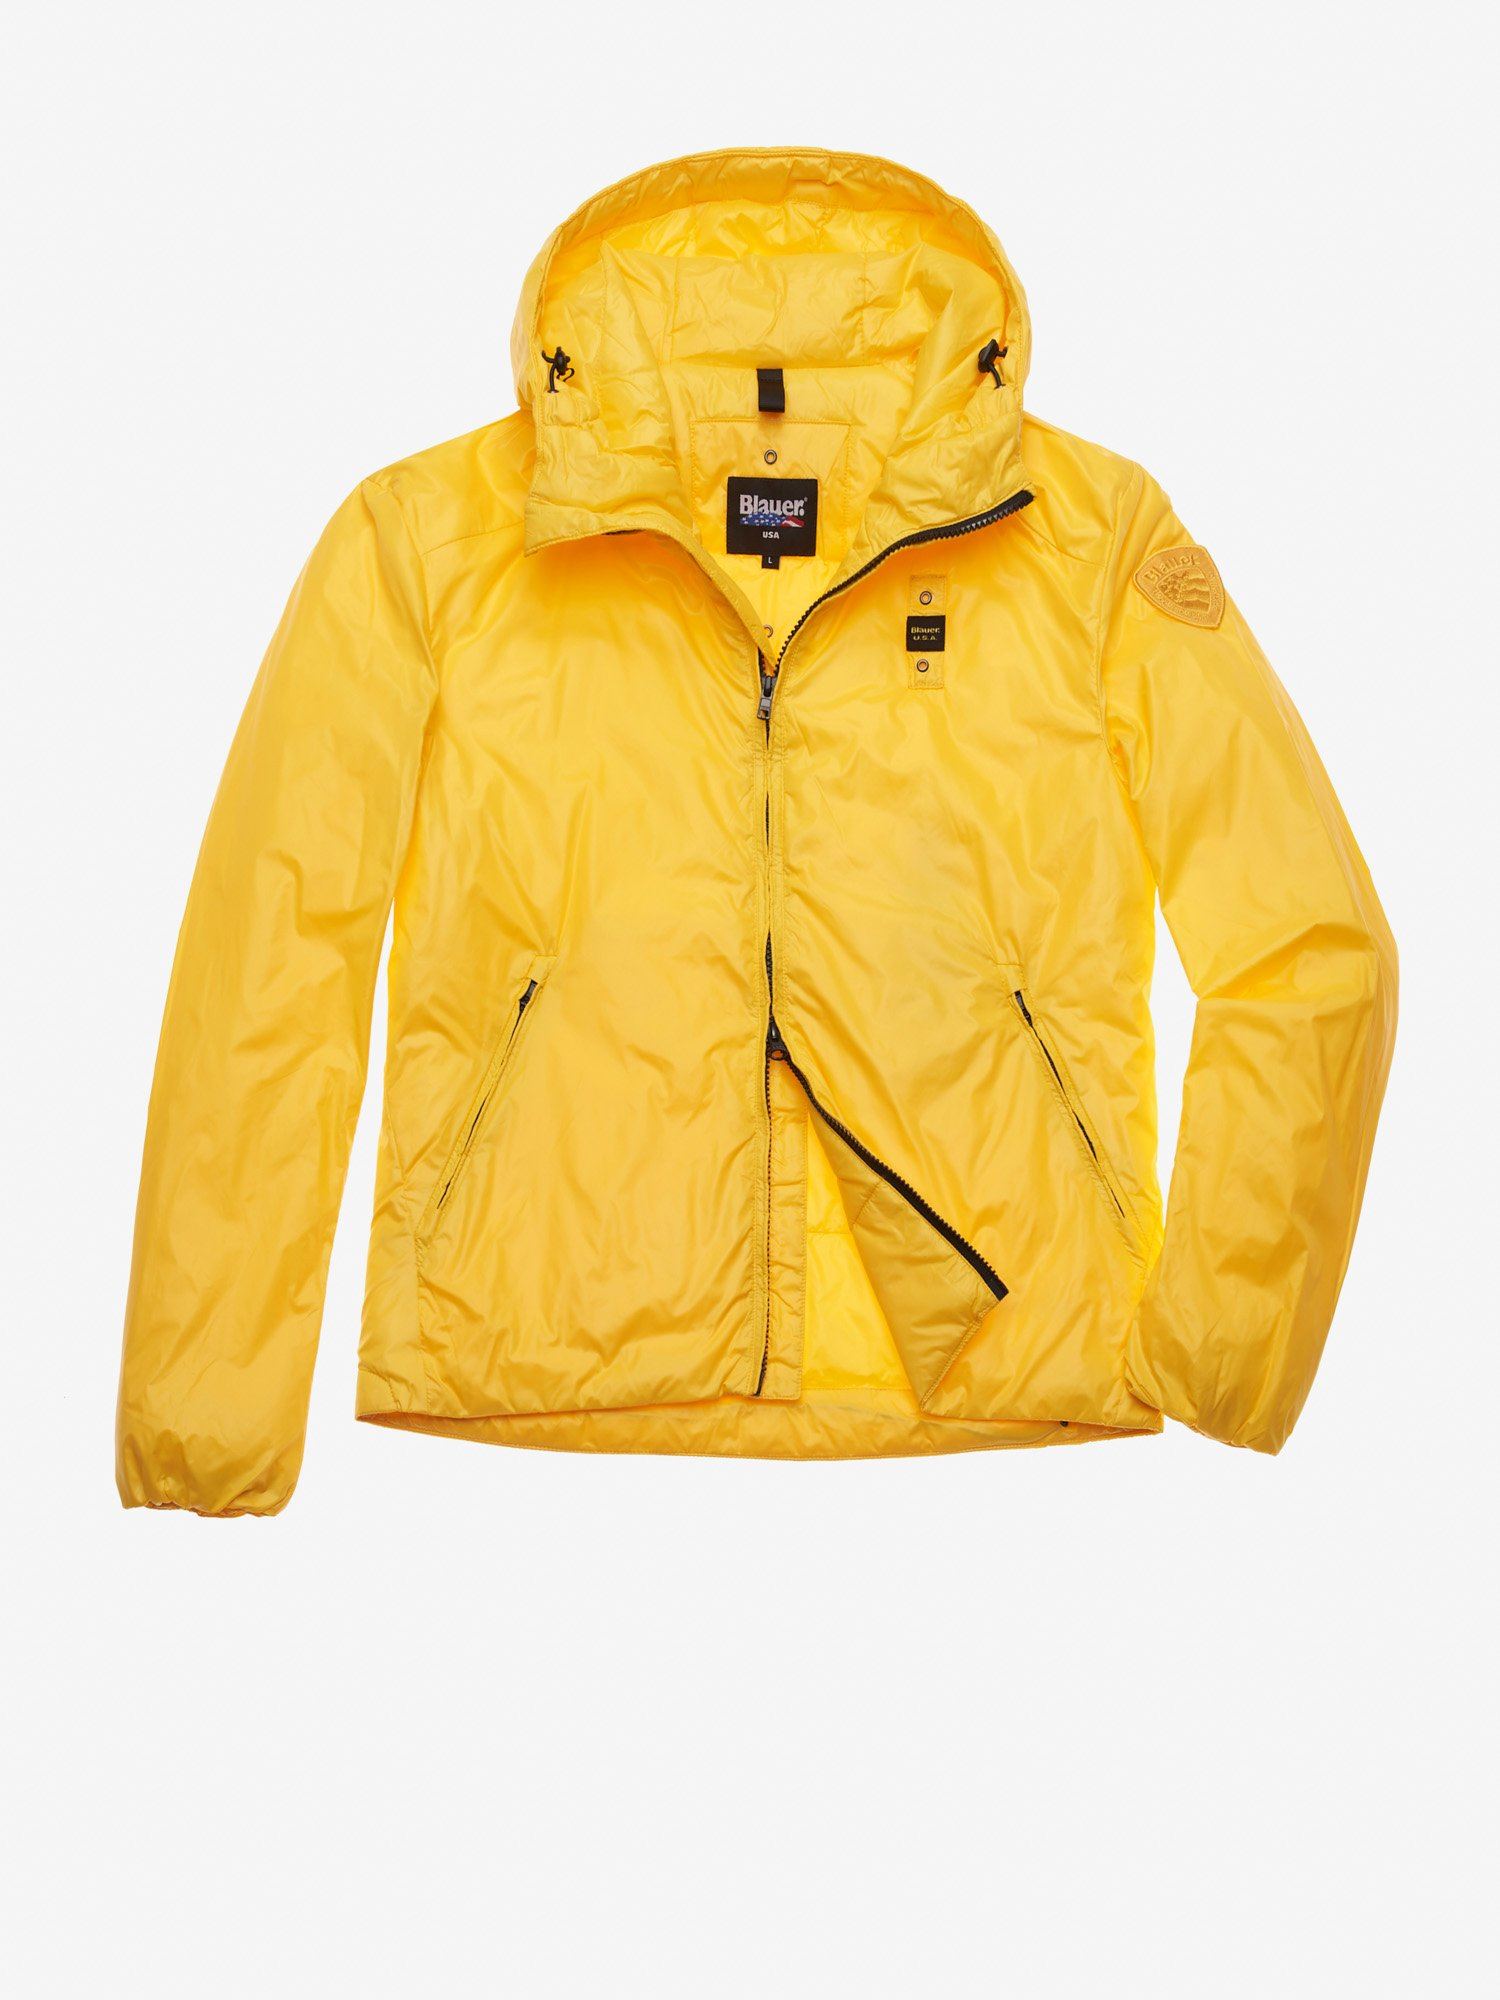 WALKER SMOOTH NYLON PADDED JACKET - Blauer